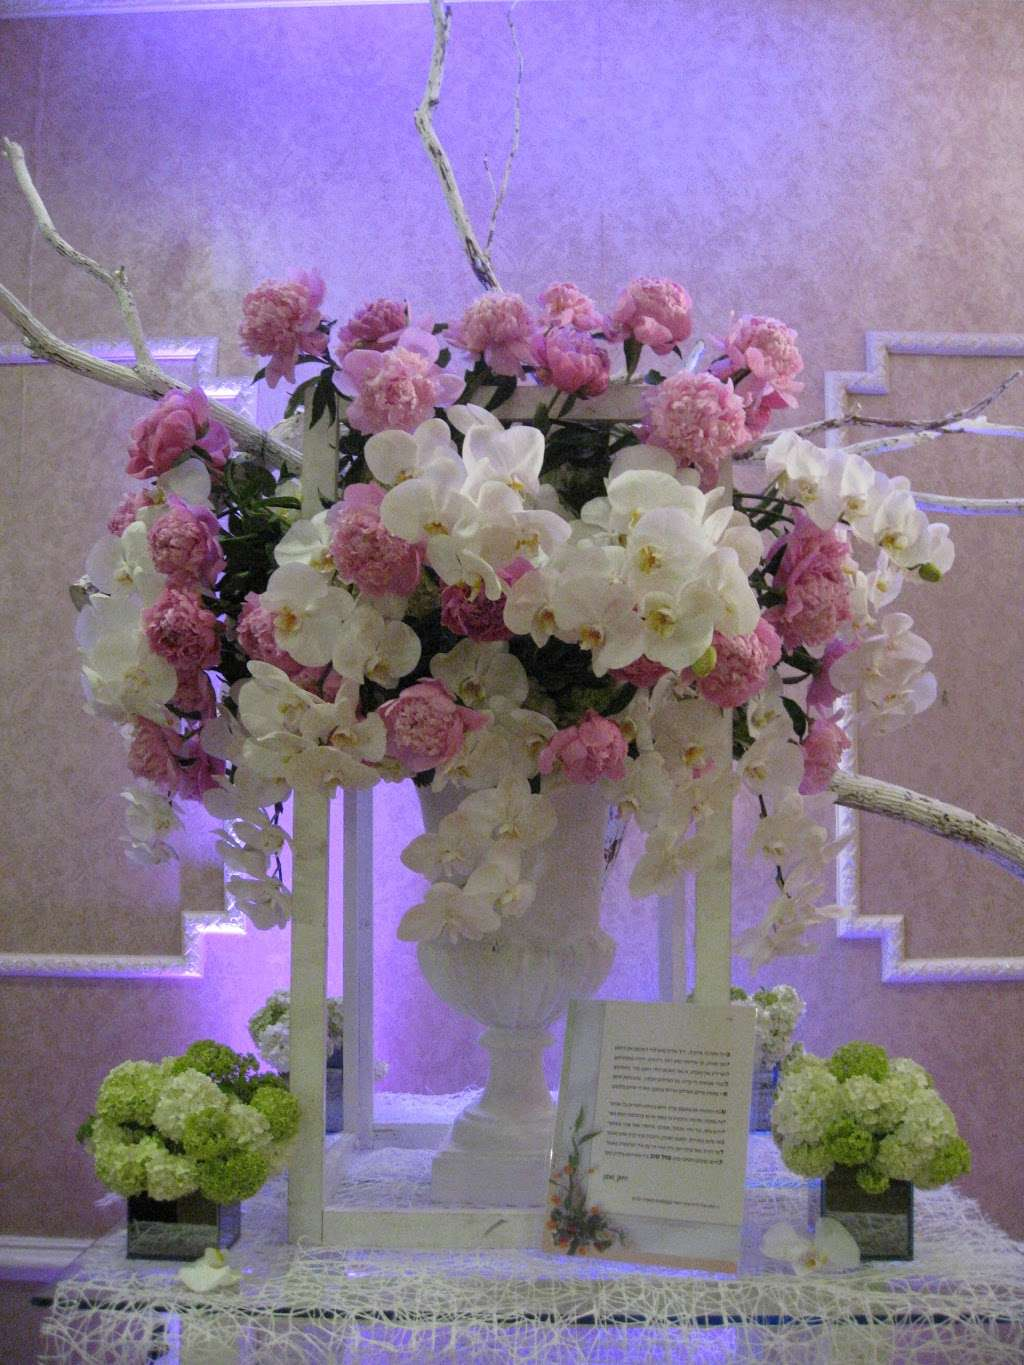 Gold Flowers - florist  | Photo 4 of 5 | Address: 153 Division Ave, Brooklyn, NY 11211, USA | Phone: (718) 384-5430